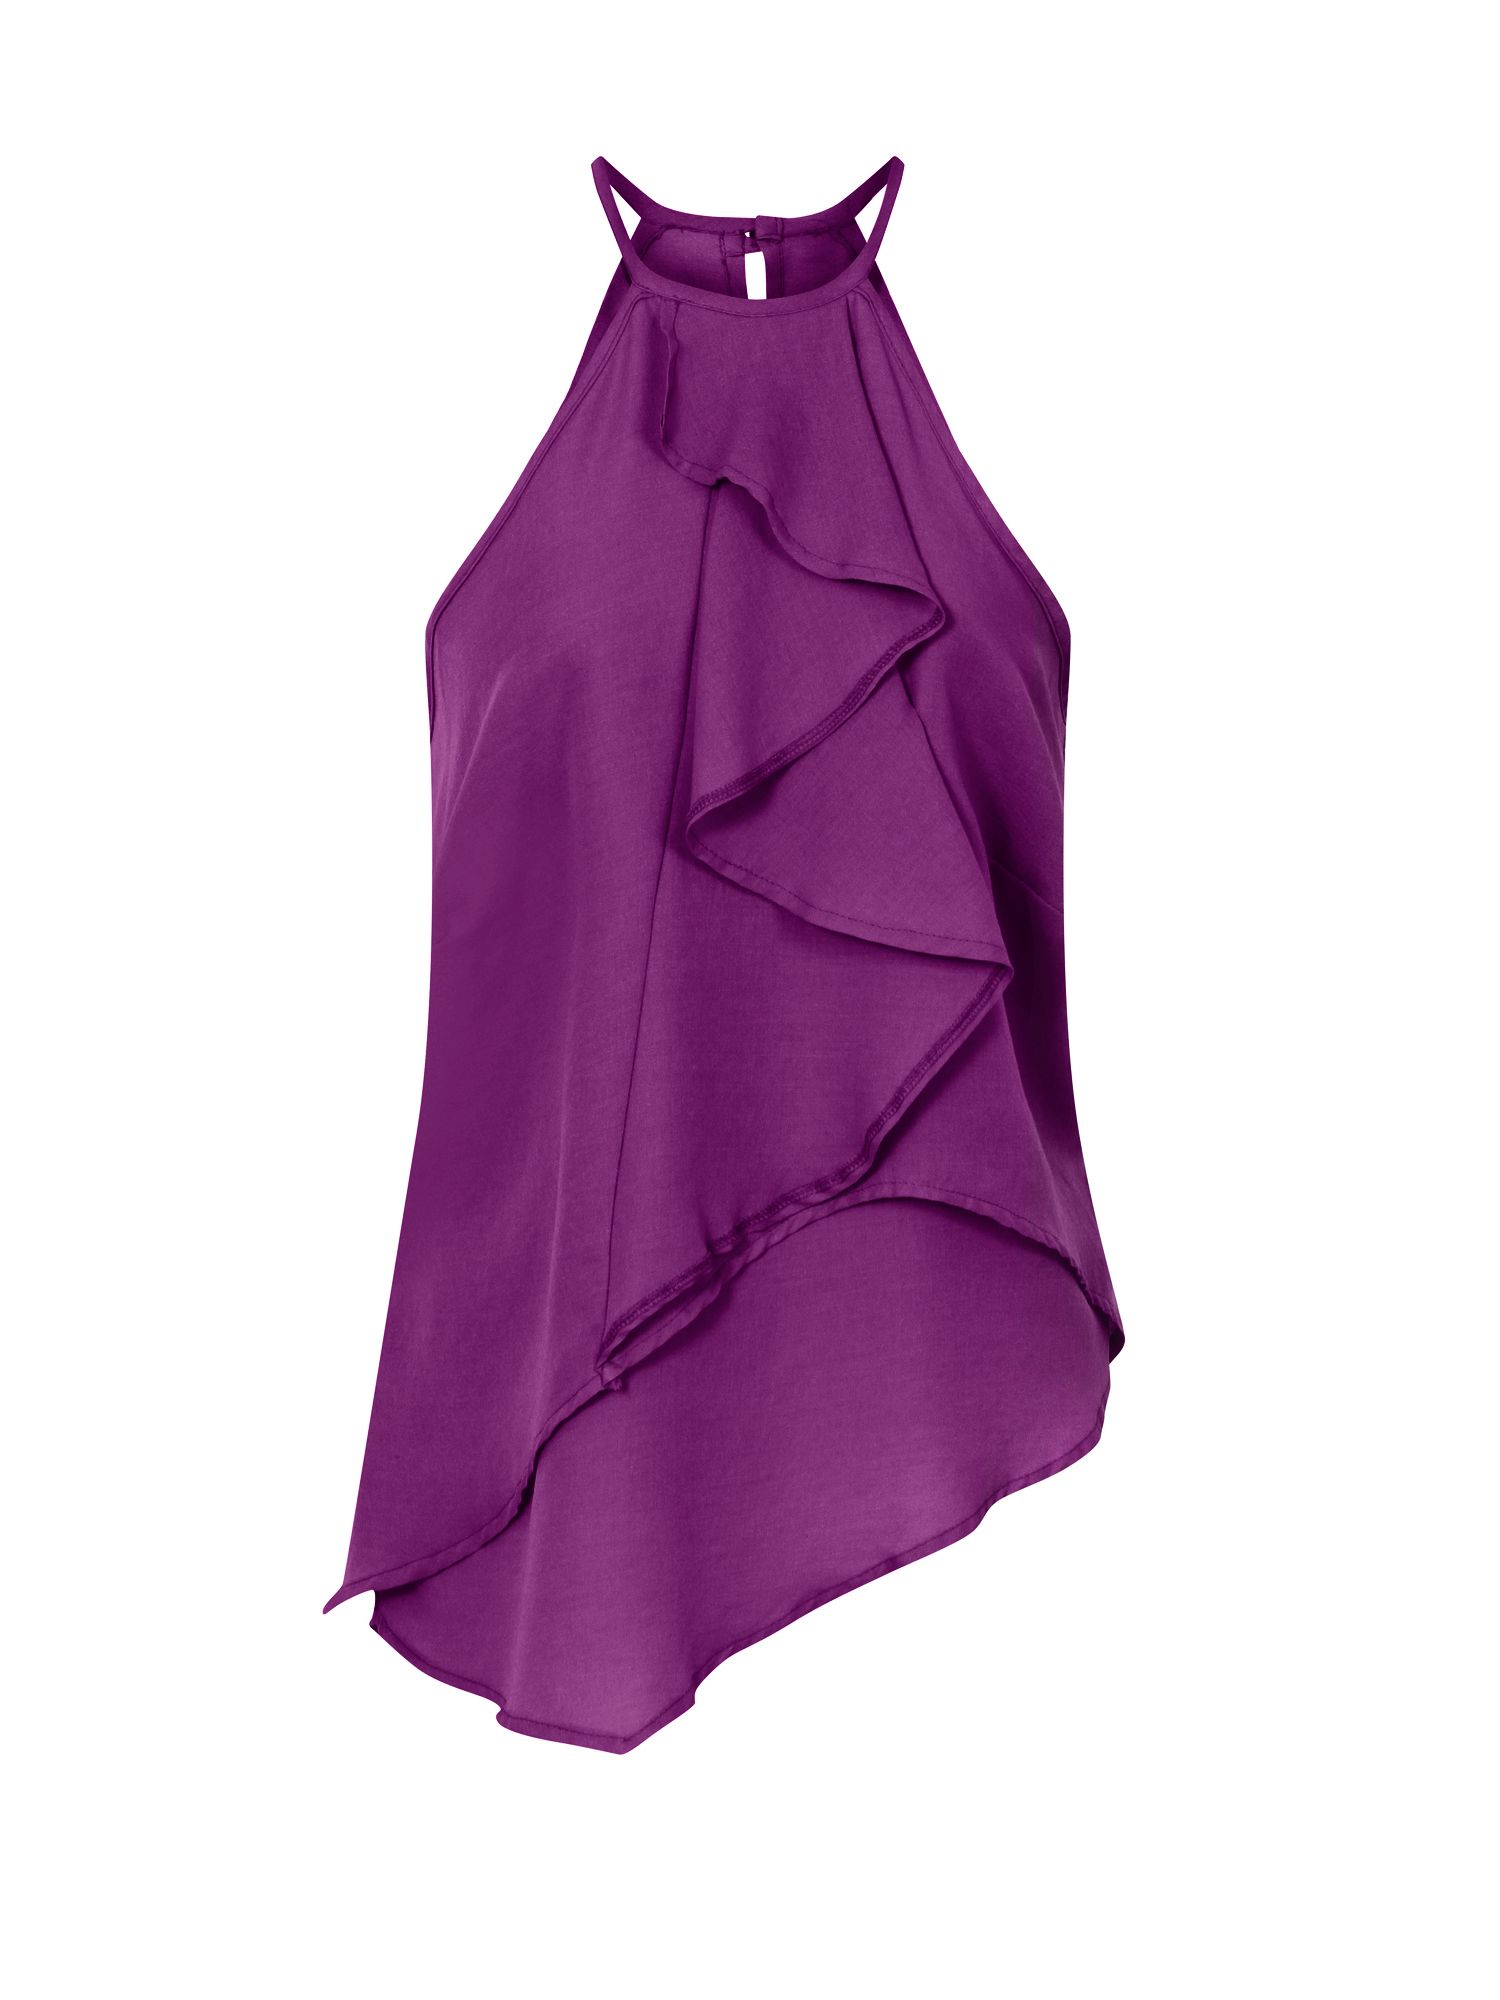 HotSquash Ruffle Halter Neck Top in Clever Fabric, Purple